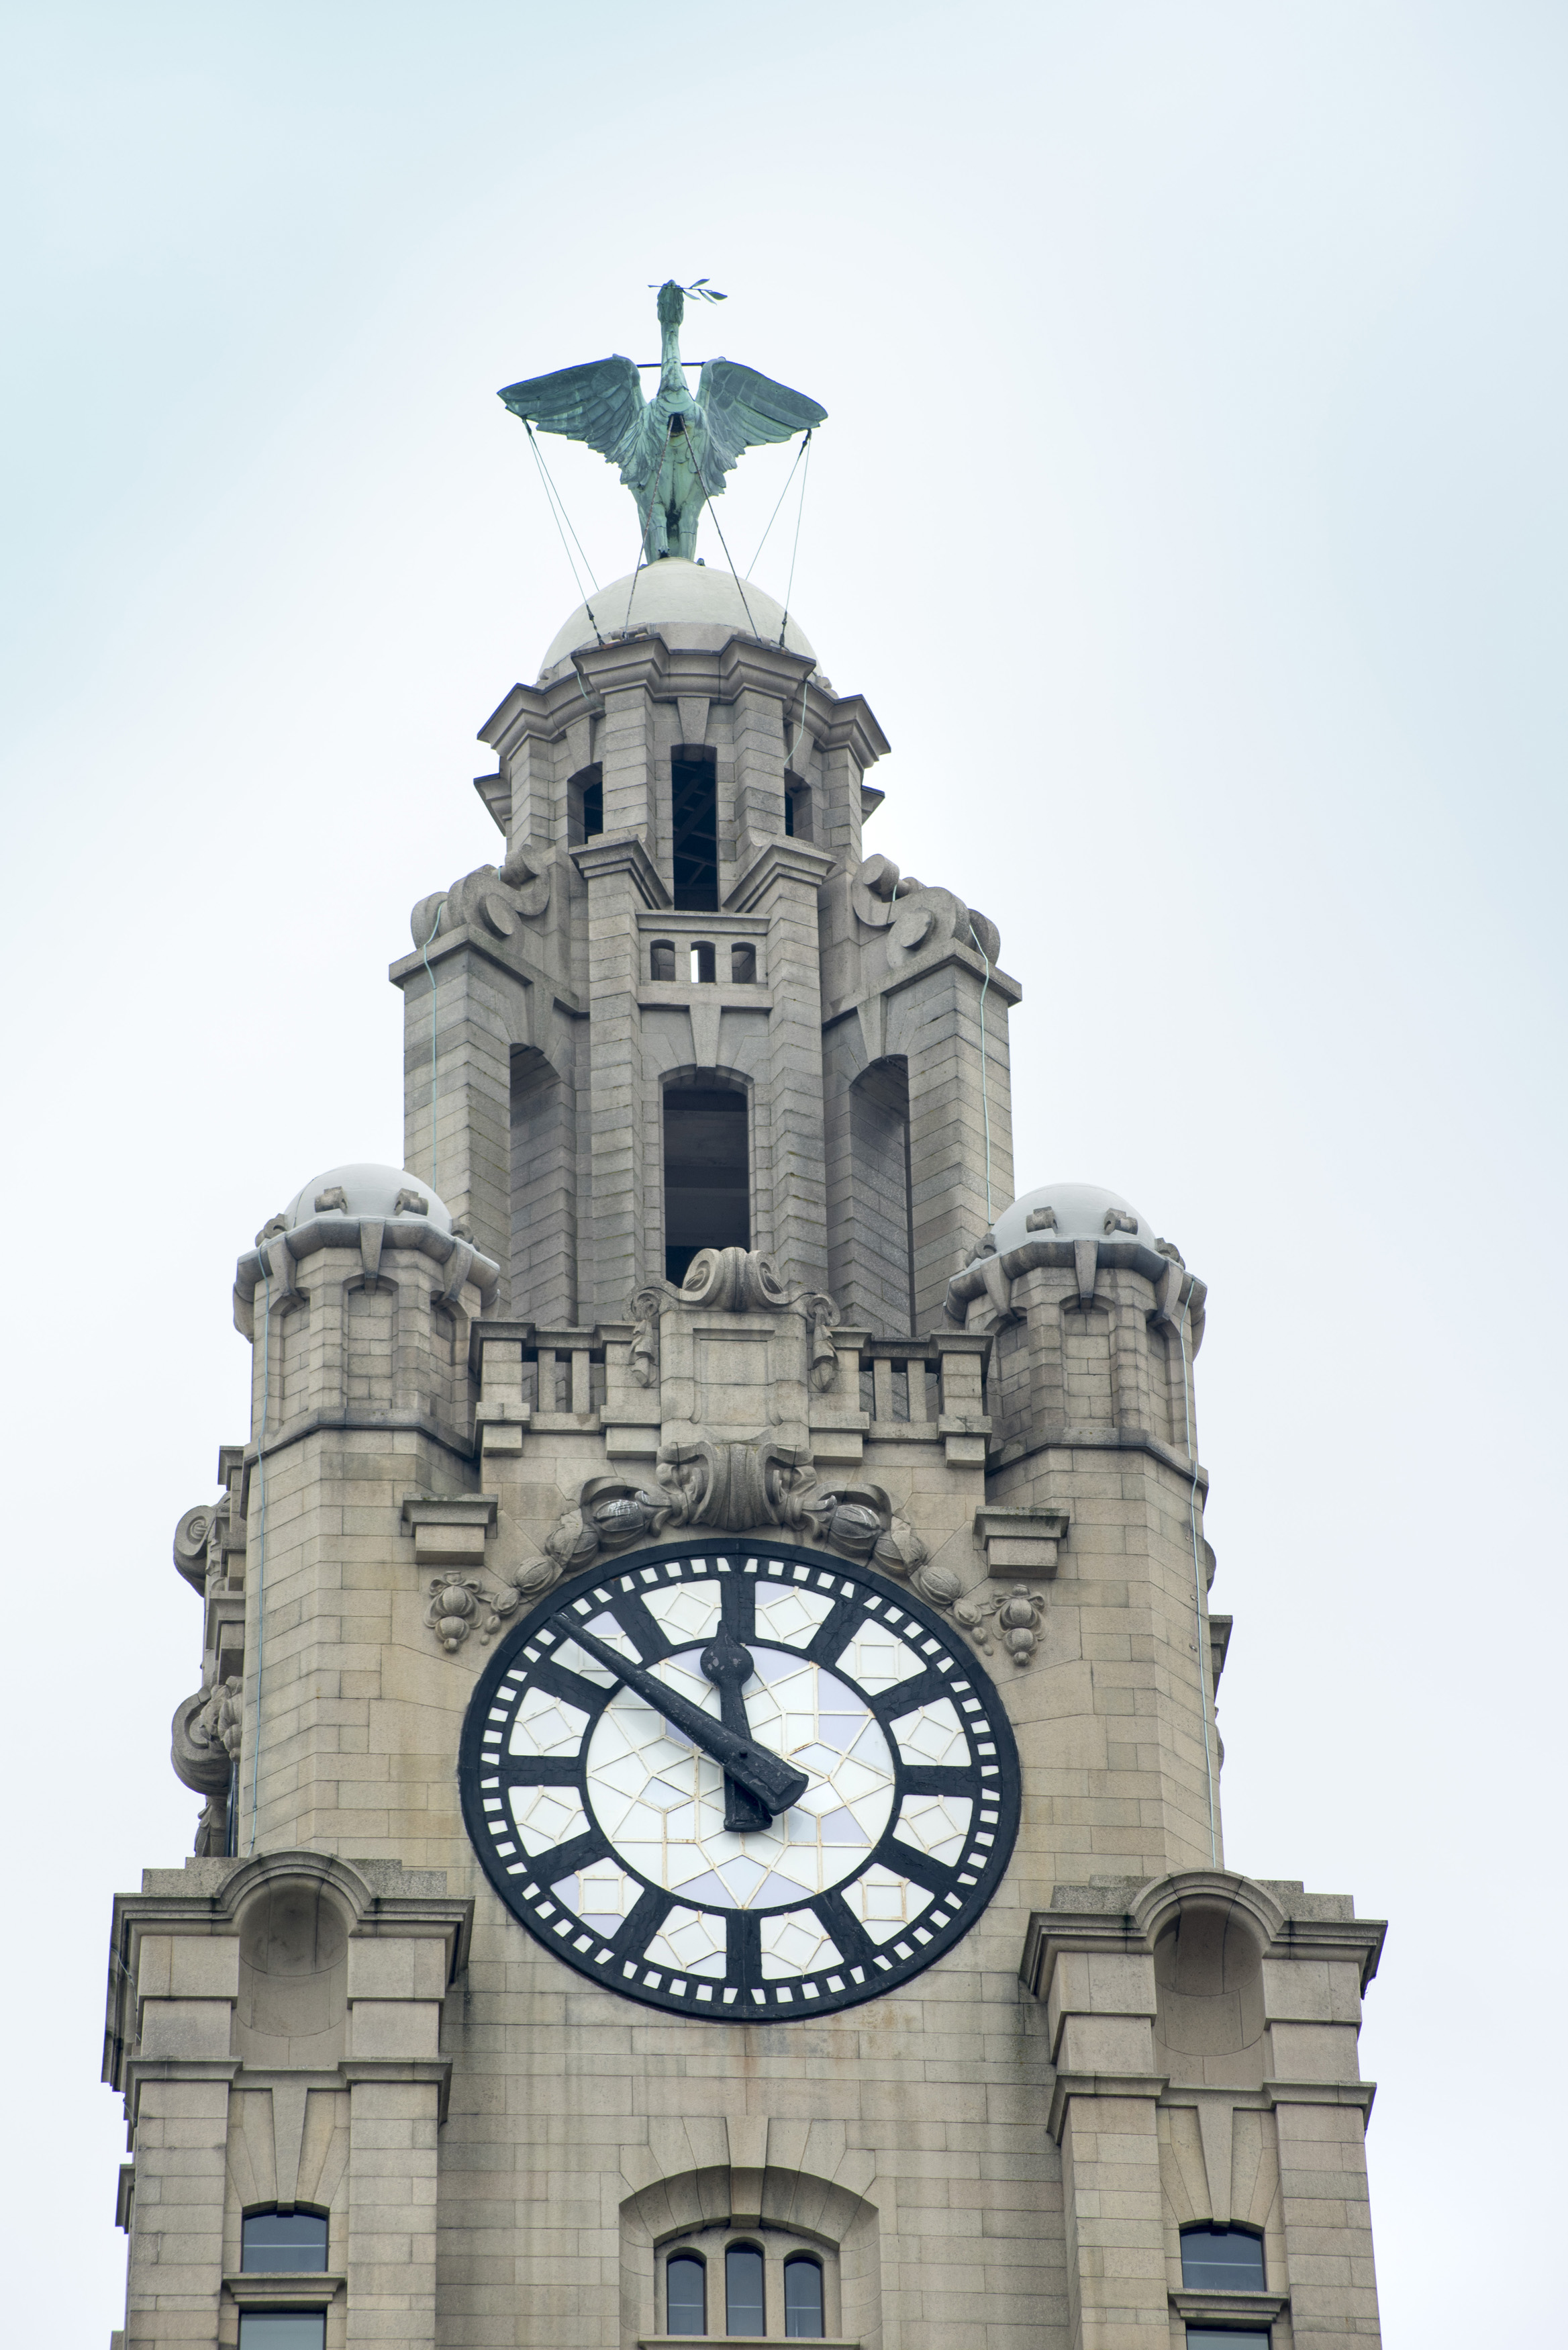 Close up on Liver Building clock tower with statue on top in Liverpool, United Kingdom